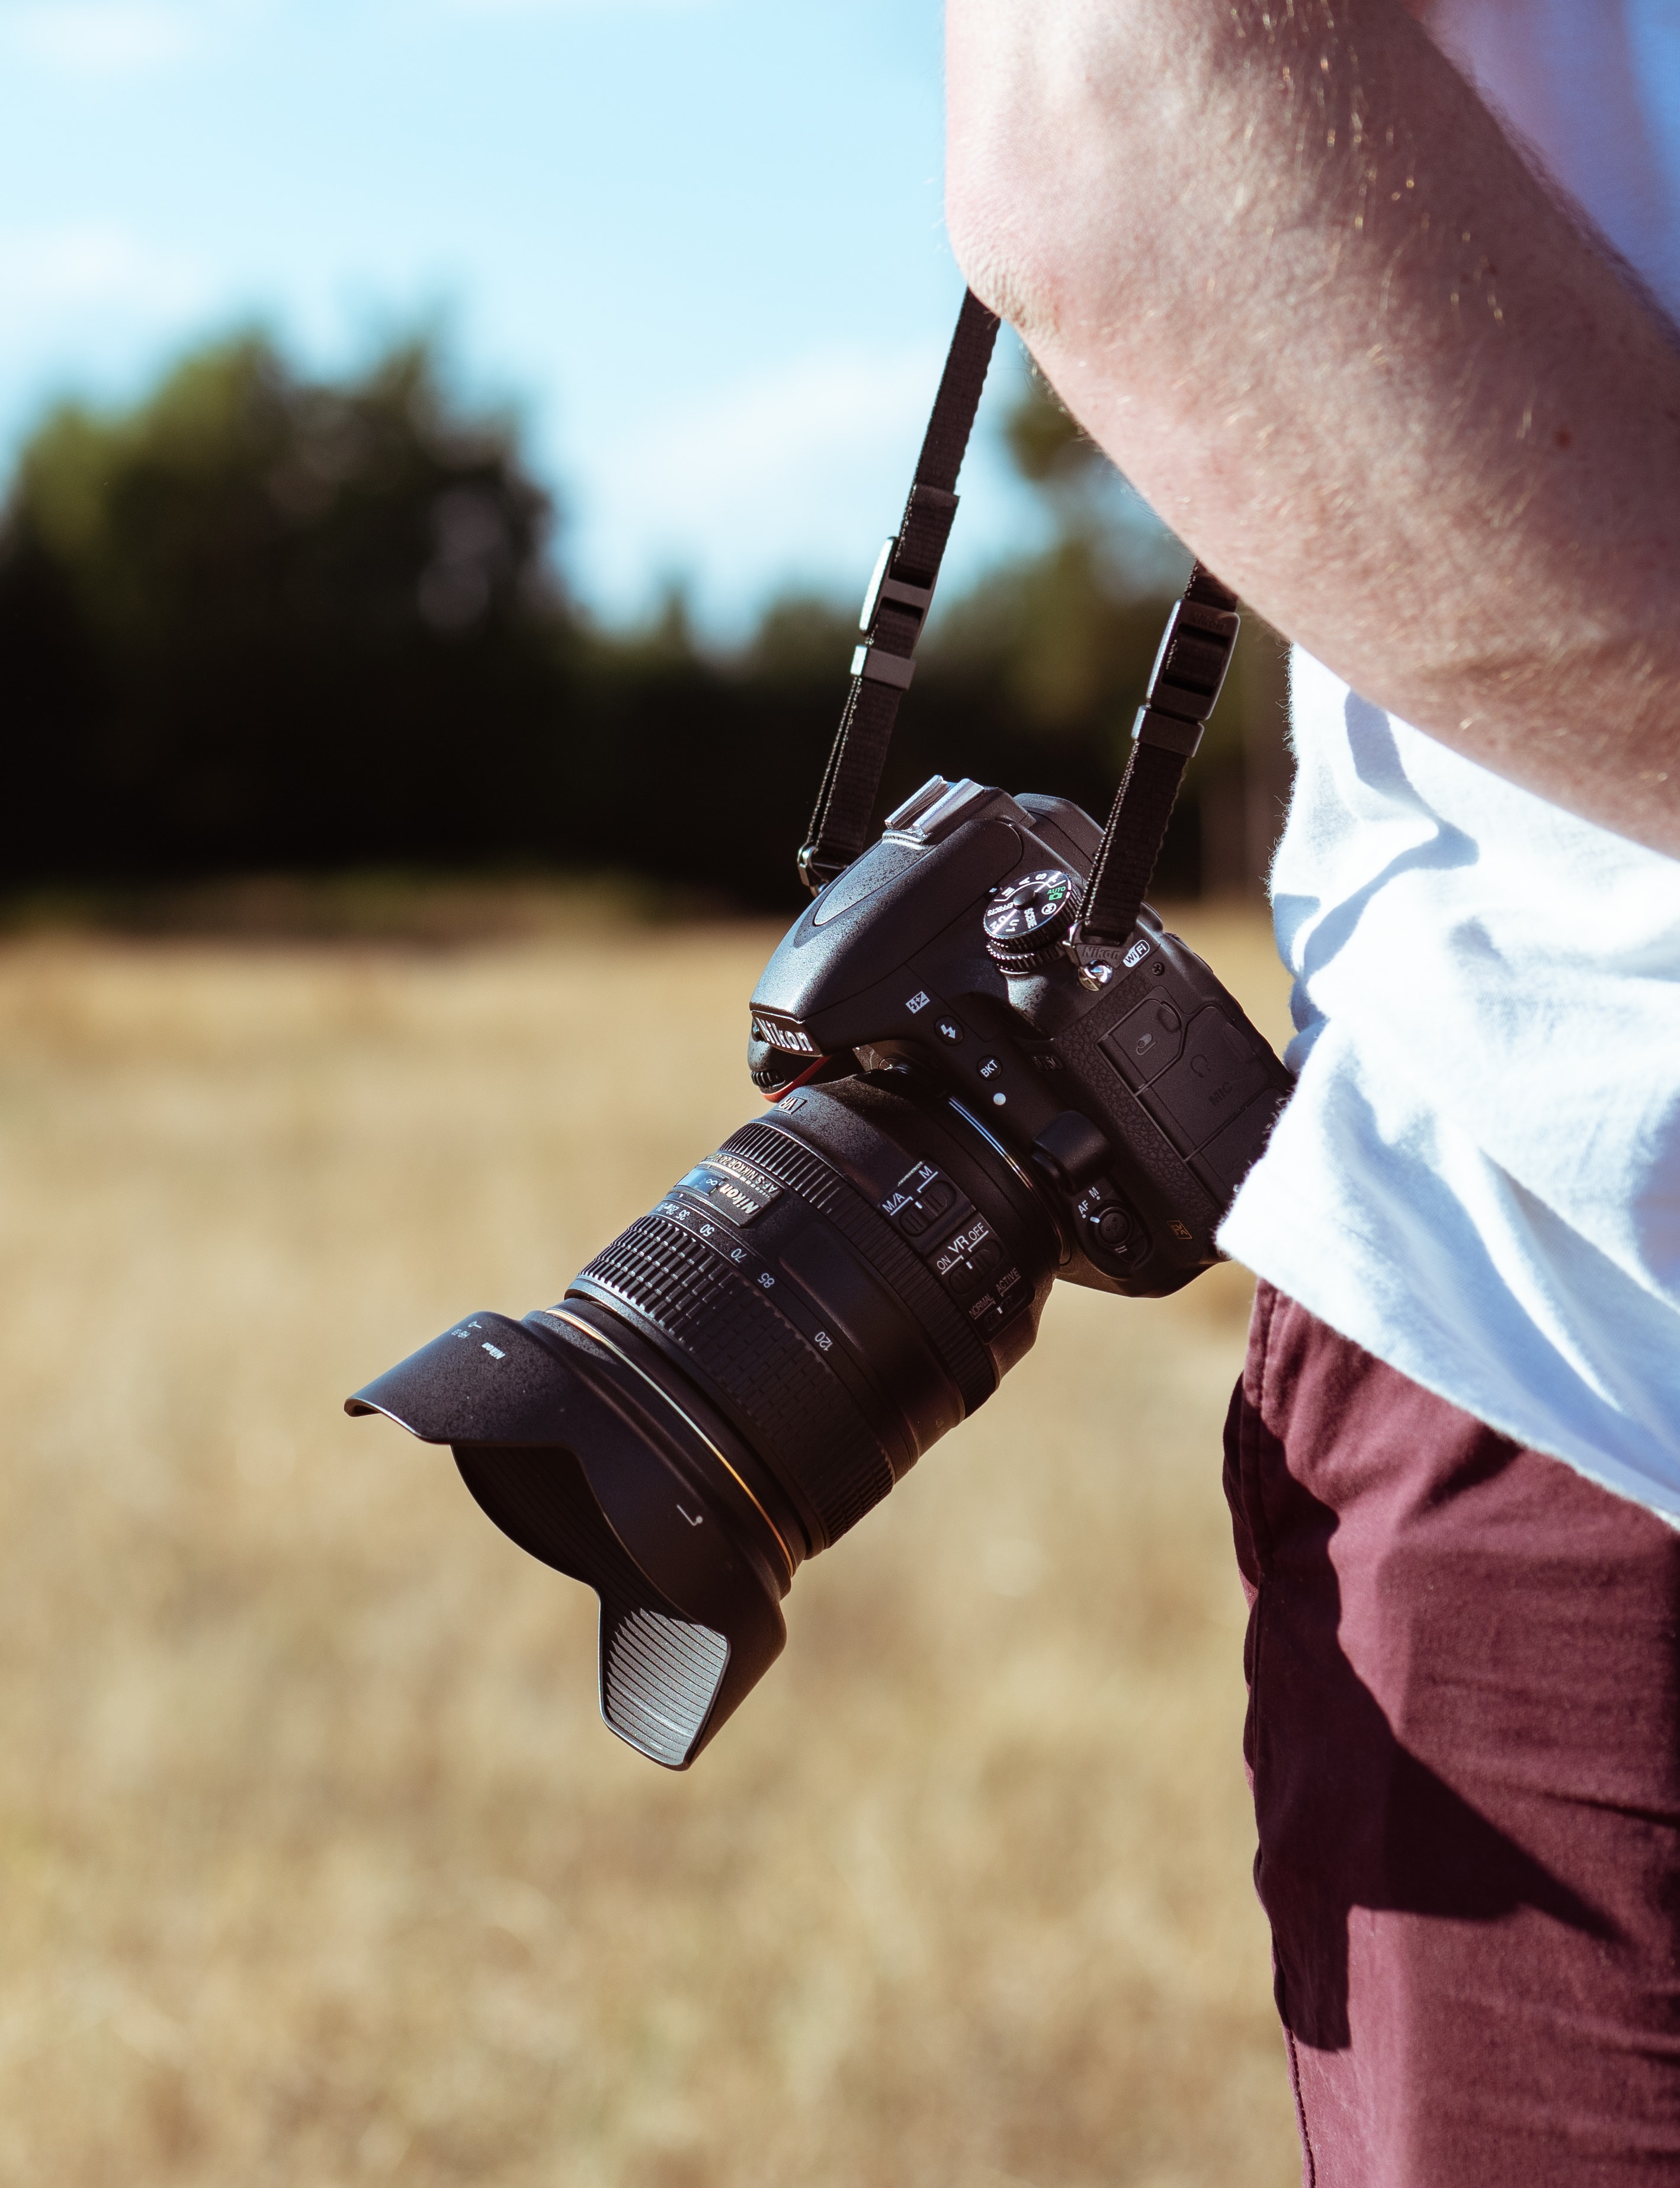 person holding camera standing on grass